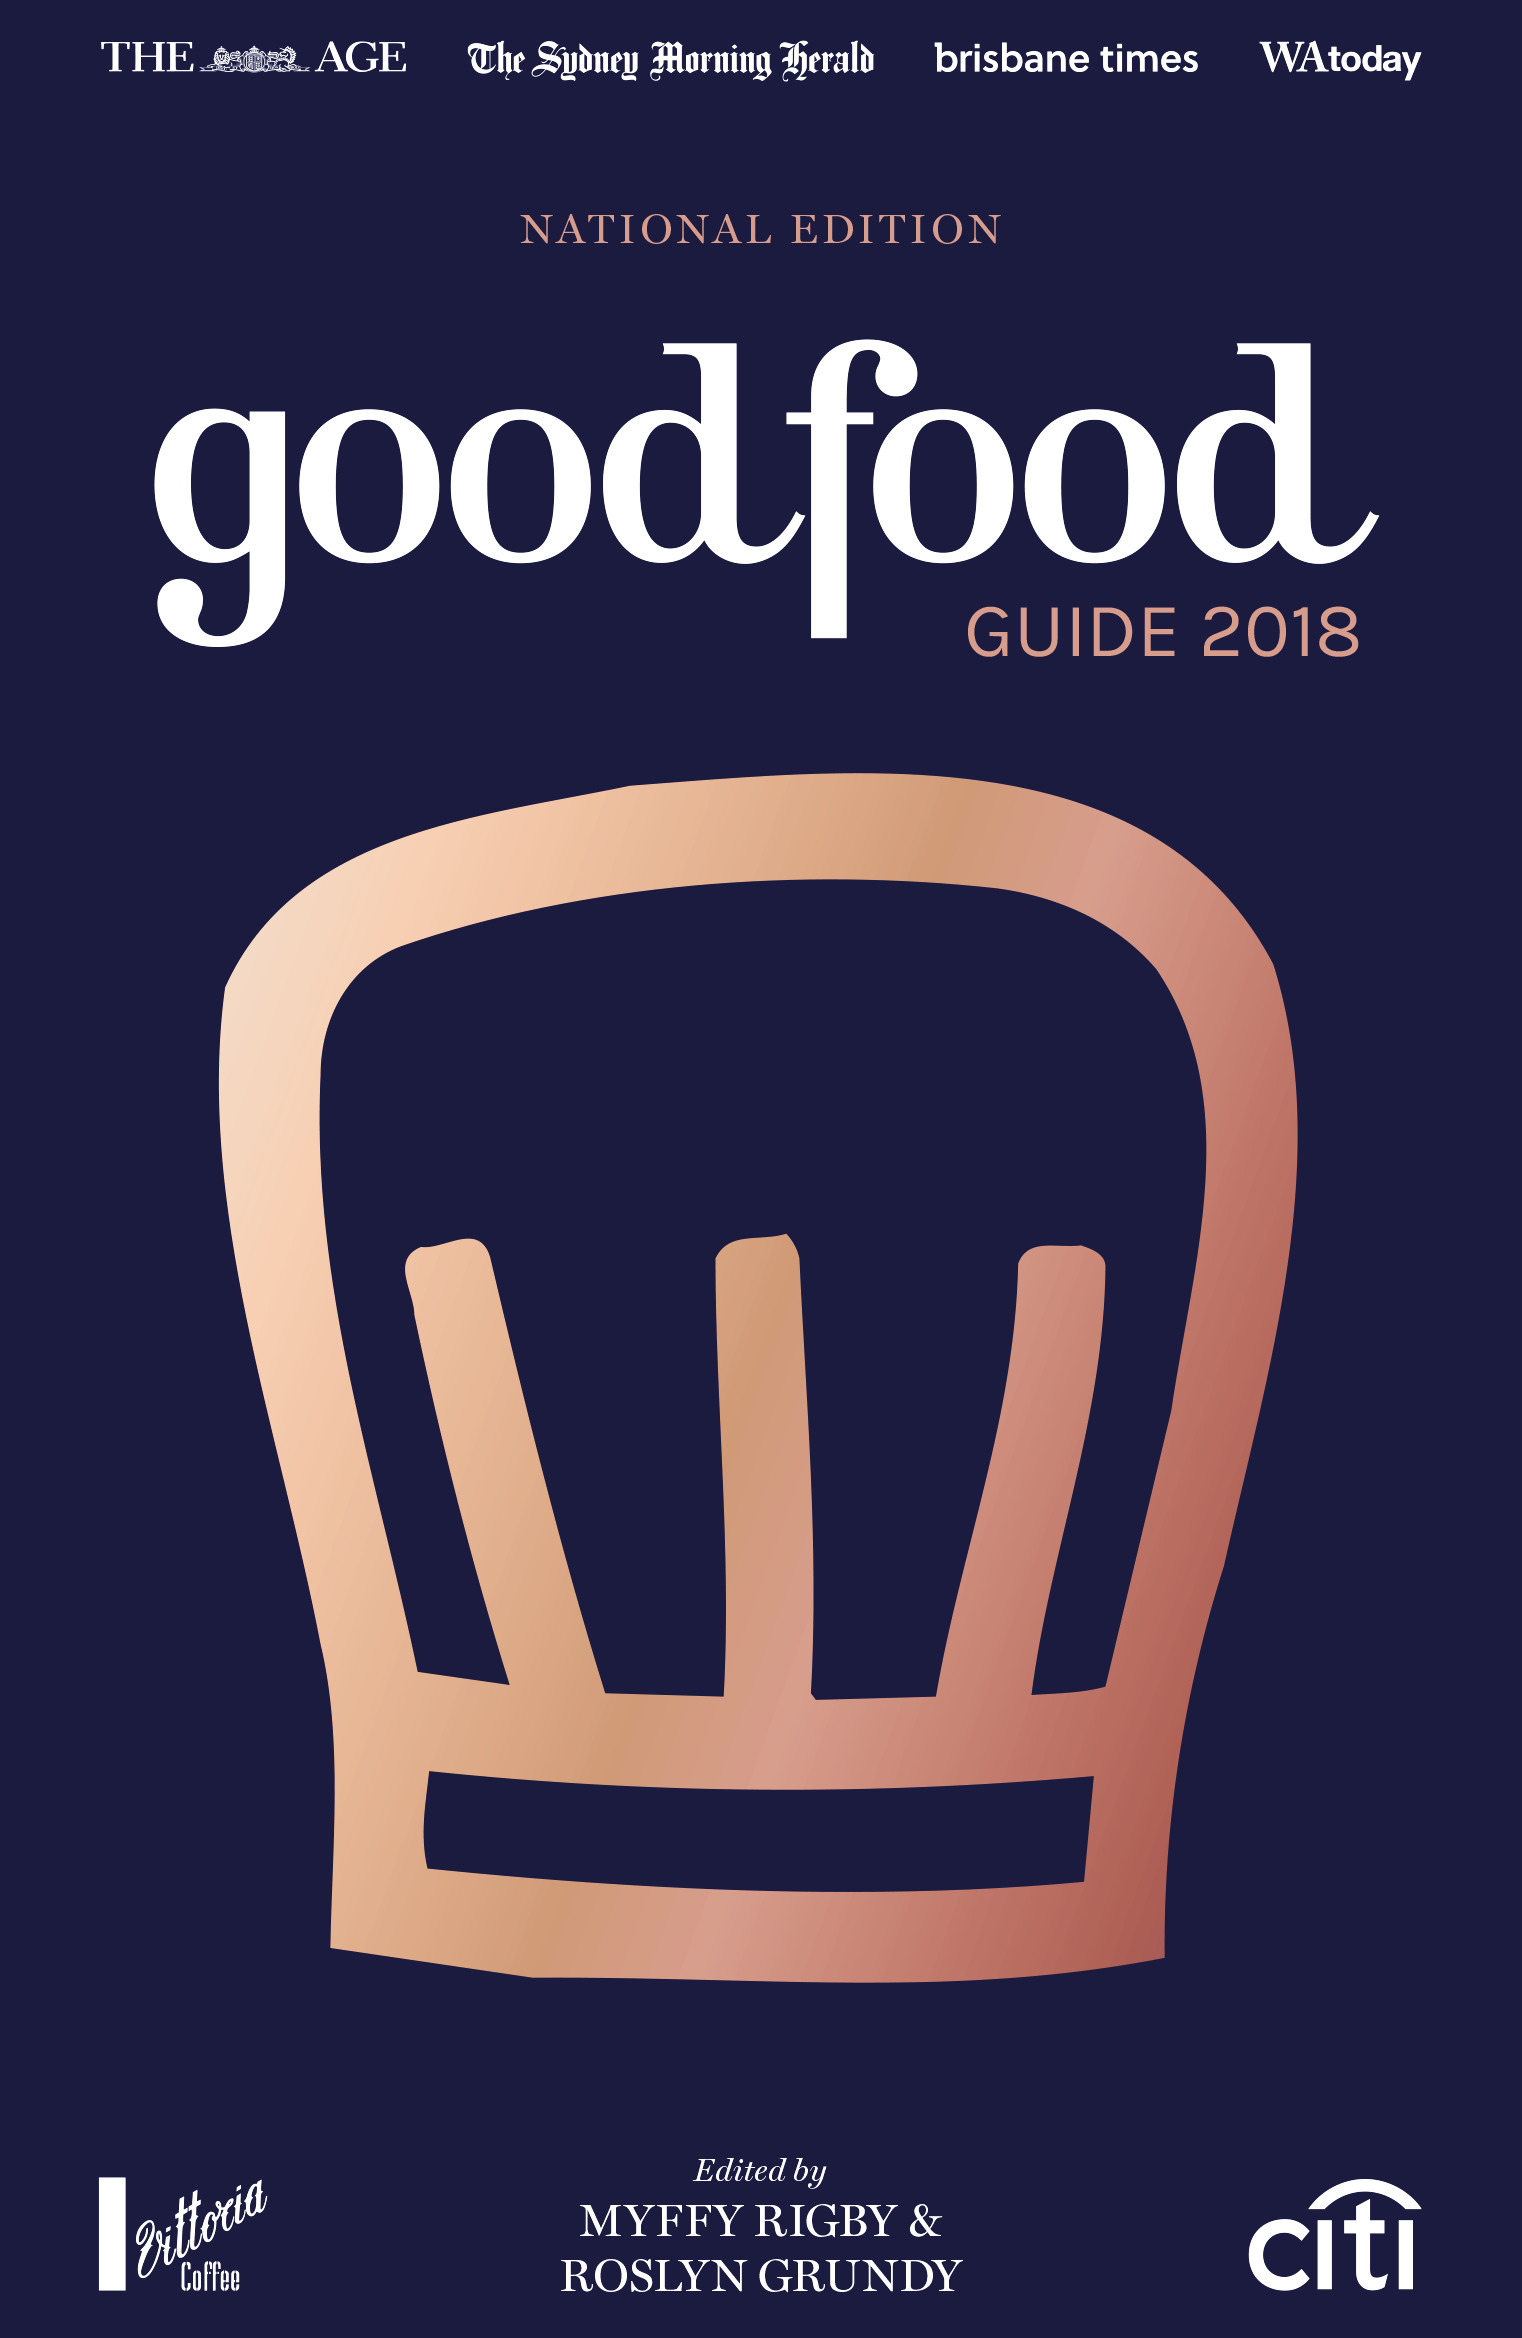 Good Food Guide 2018The National Fairfax Good Food Guide